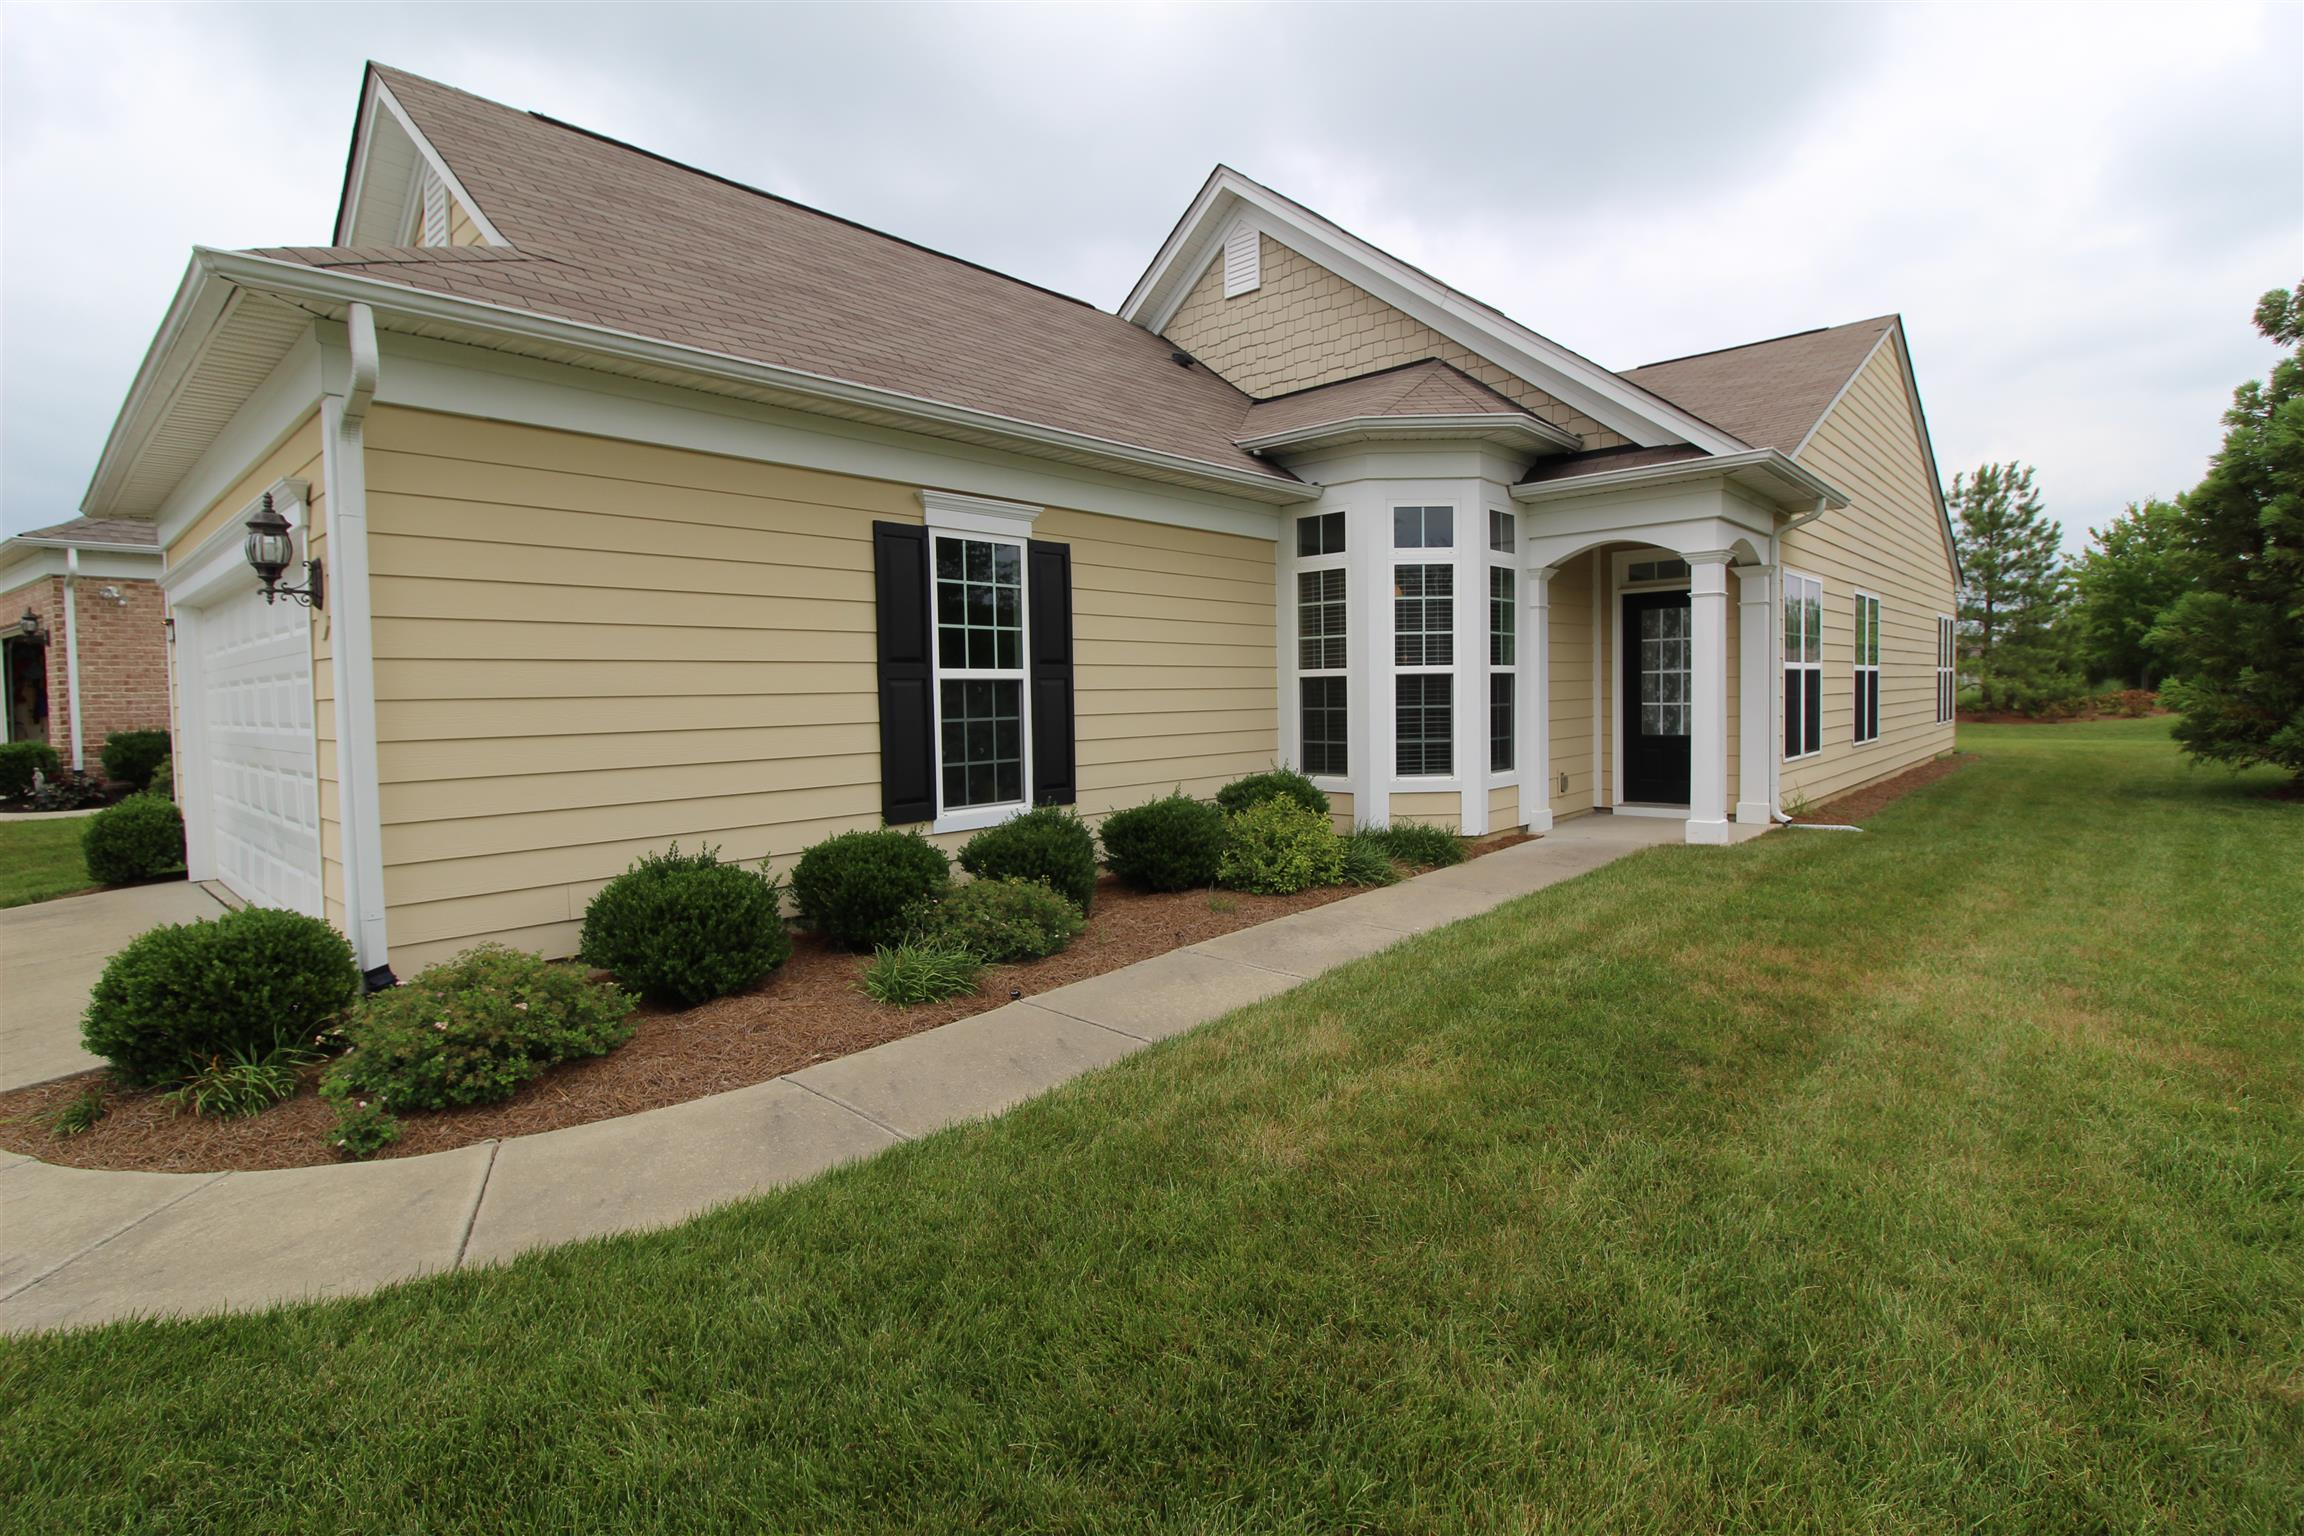 427 Independence St, Mount Juliet in Wilson County County, TN 37122 Home for Sale